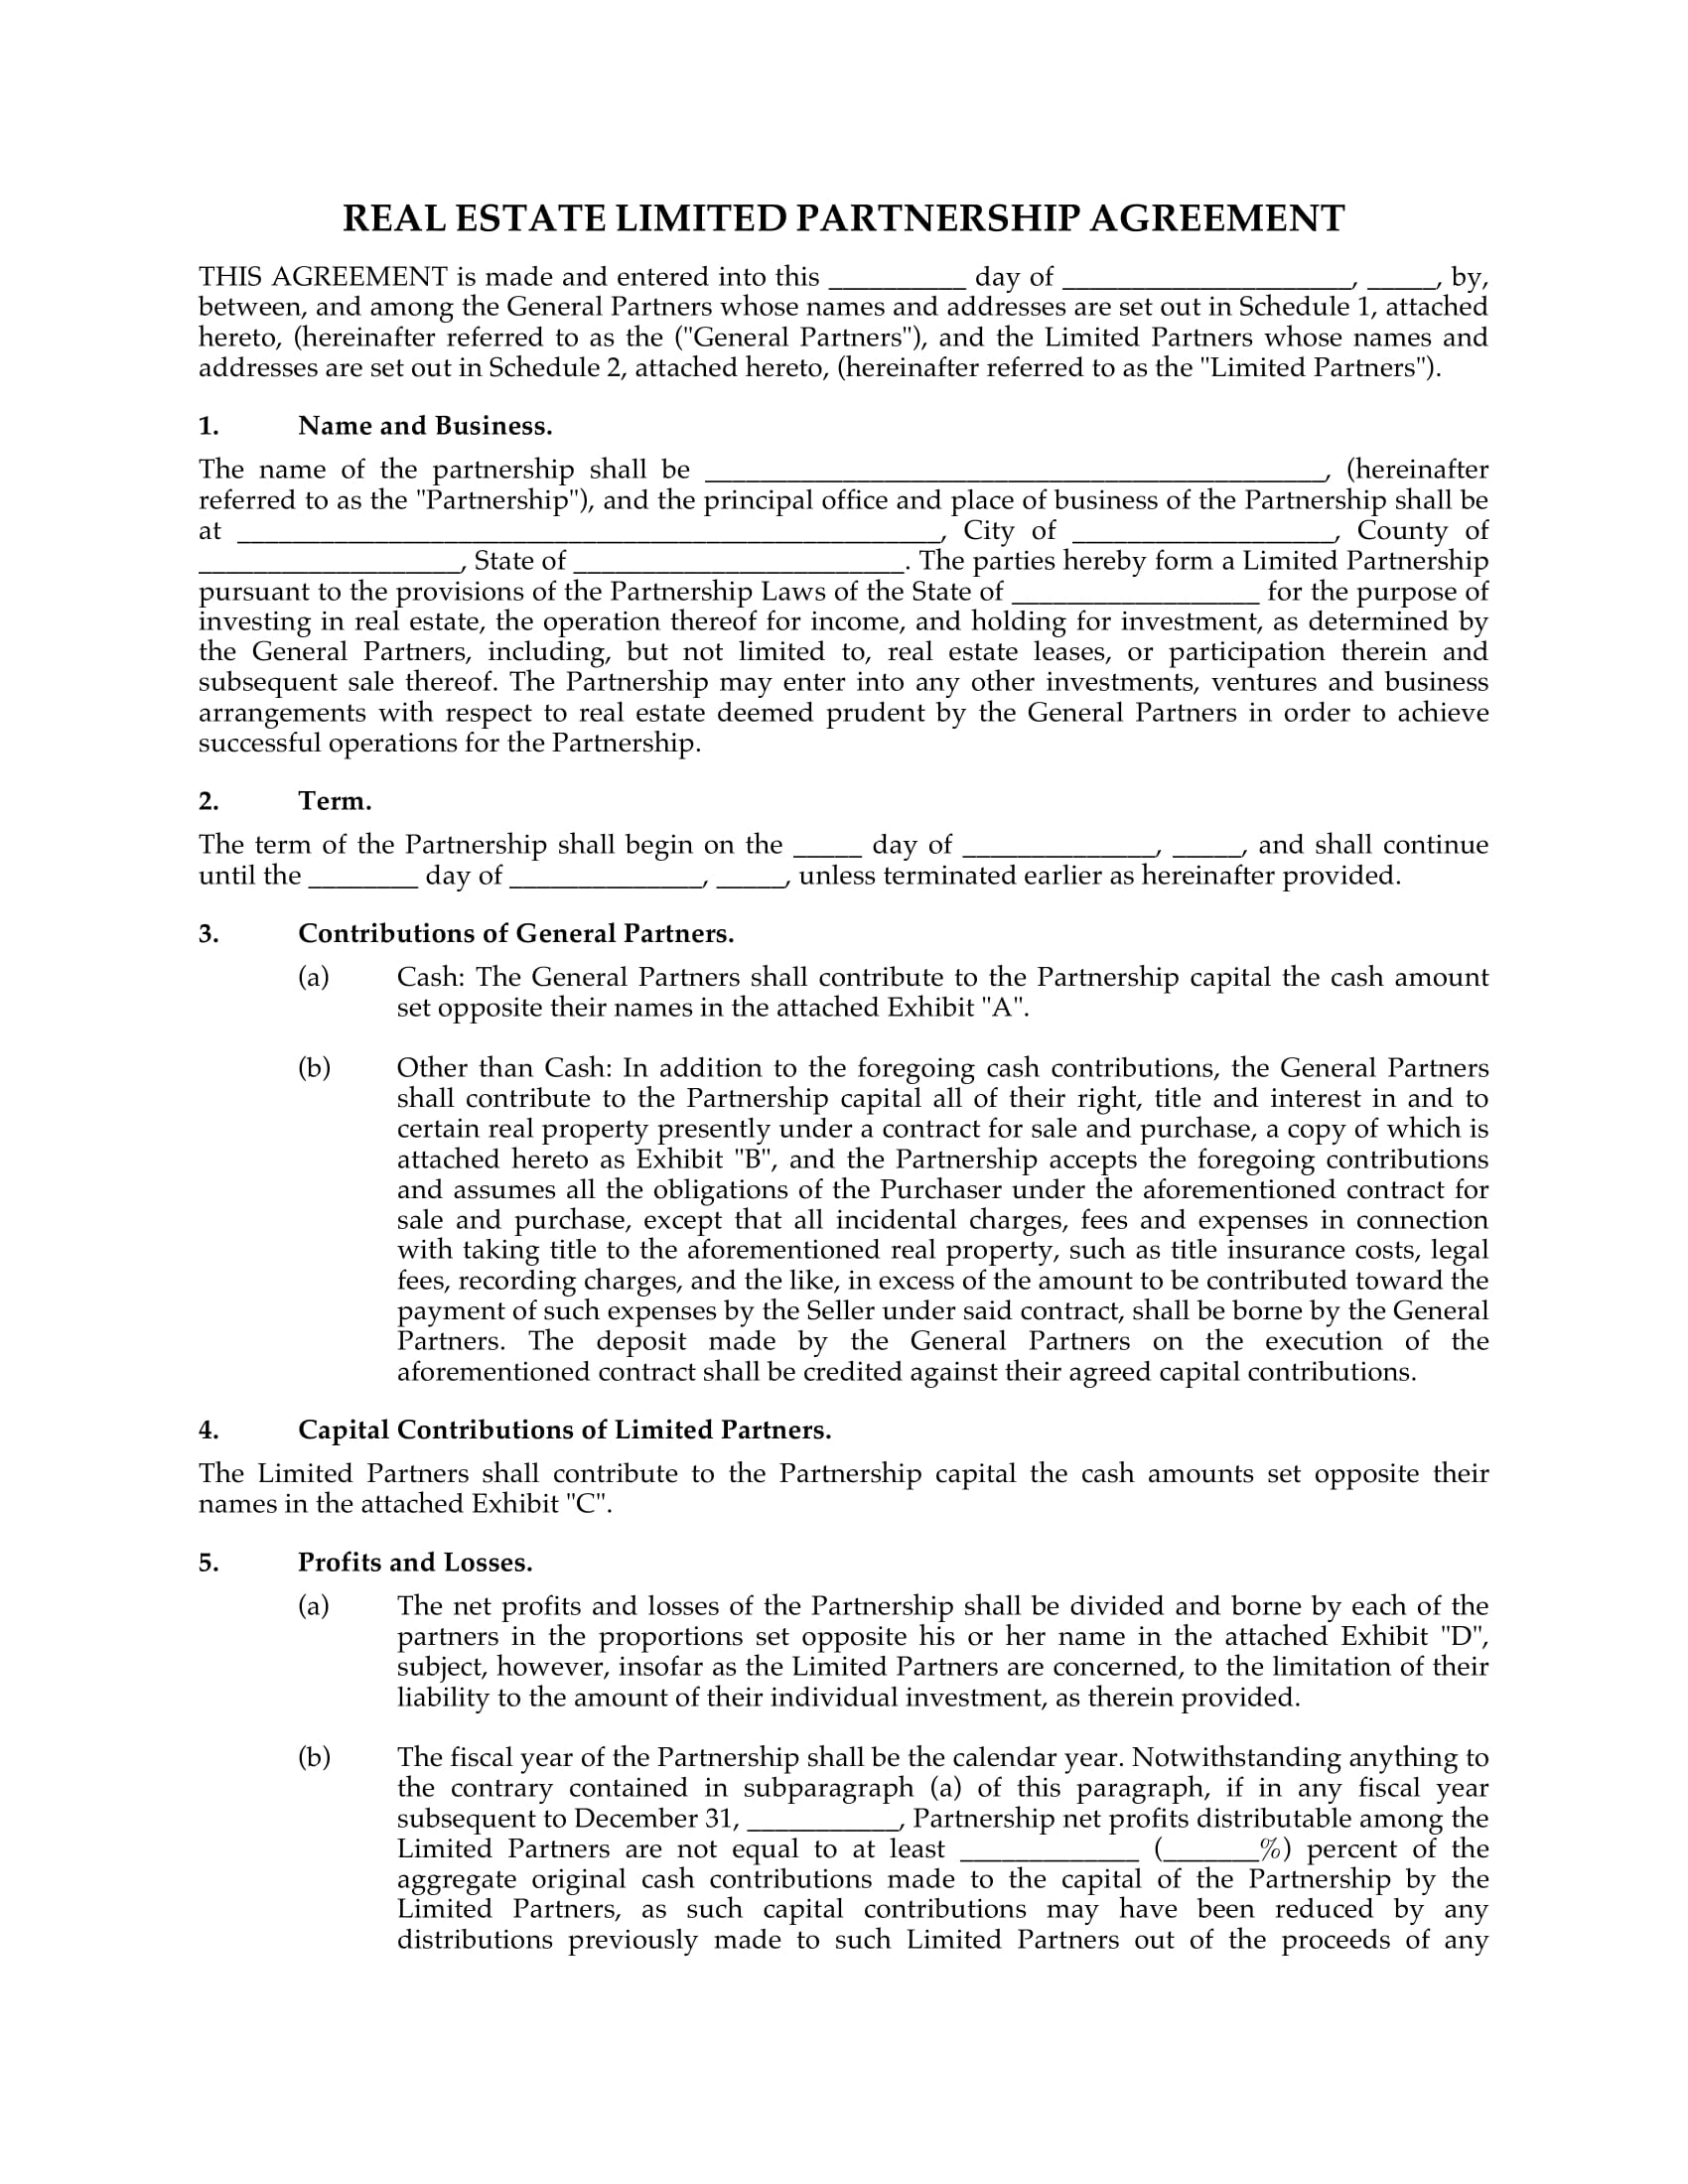 real estate limited partnership agreement example